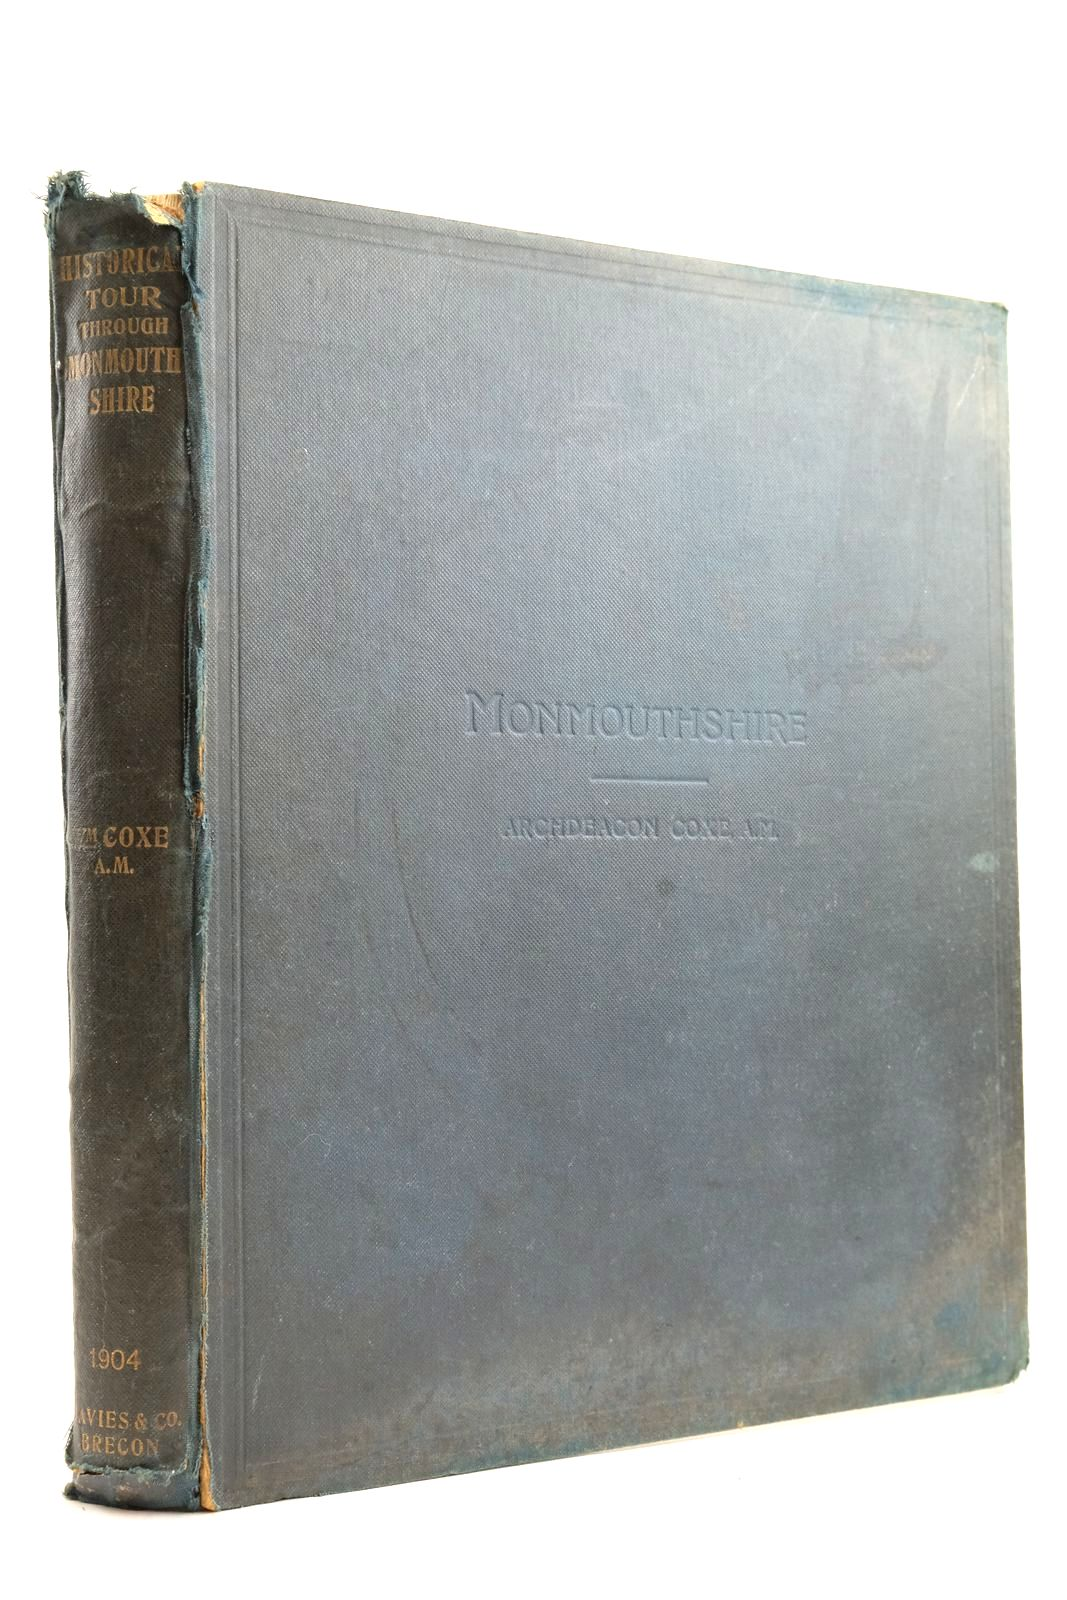 Photo of A HISTORICAL TOUR THROUGH MONMOUTHSHIRE written by Coxe, William illustrated by Hoare, R.C. published by Davies And Co. (STOCK CODE: 2133076)  for sale by Stella & Rose's Books